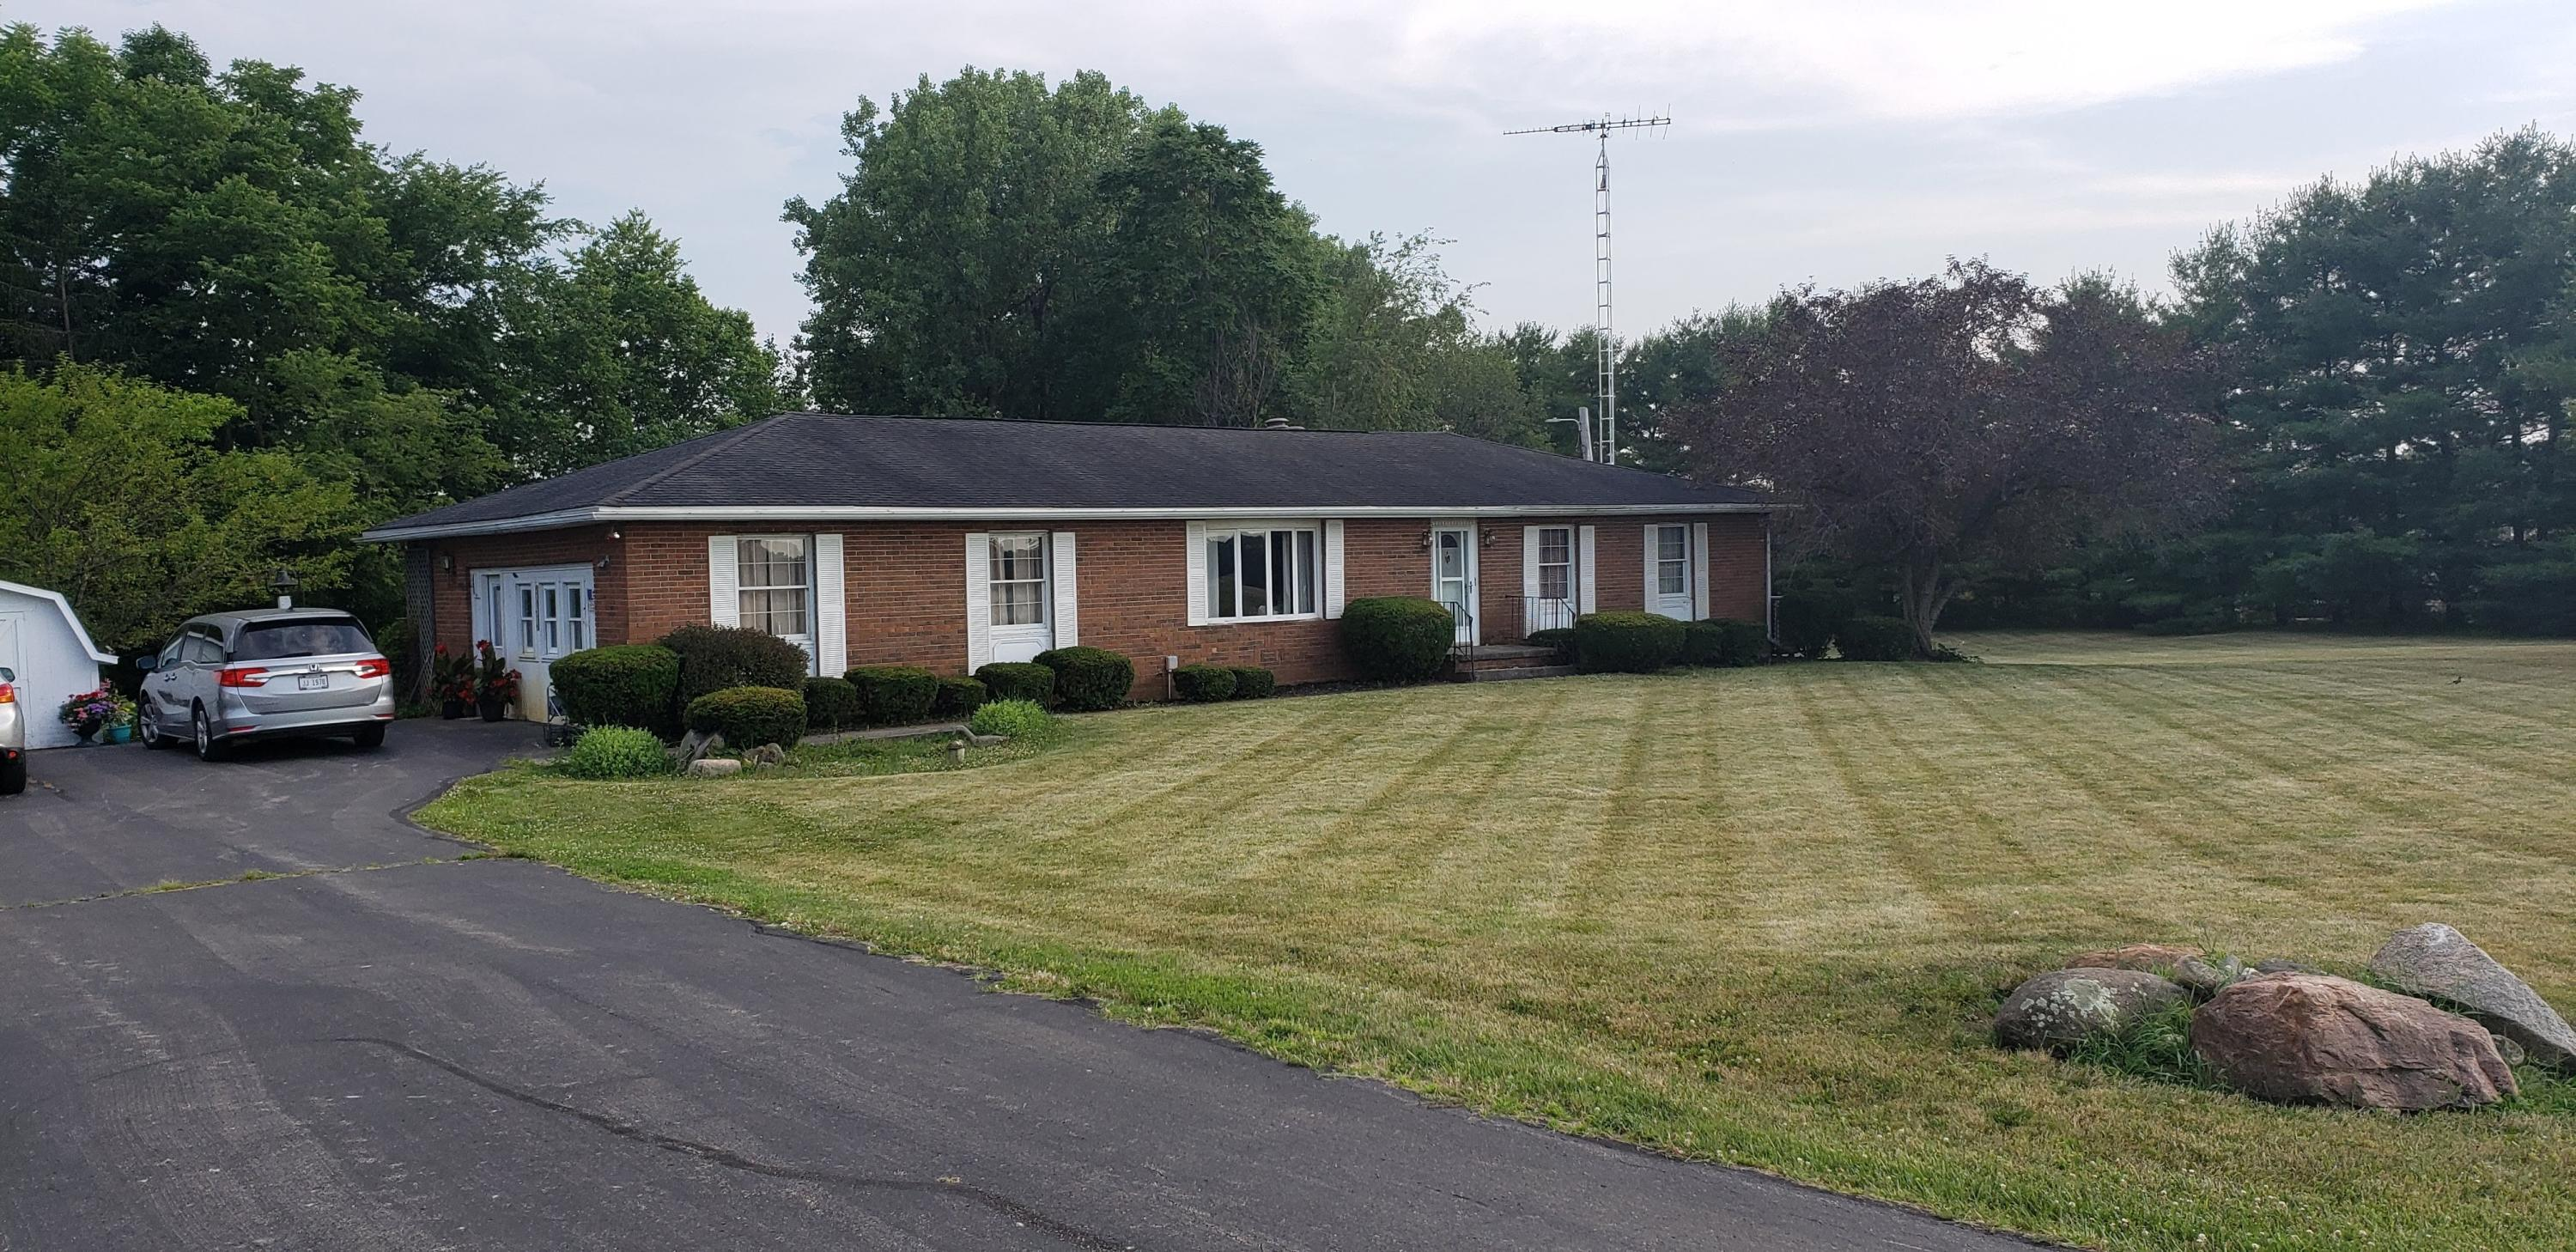 1723 W Twp Rd 51 Belle Center, OH